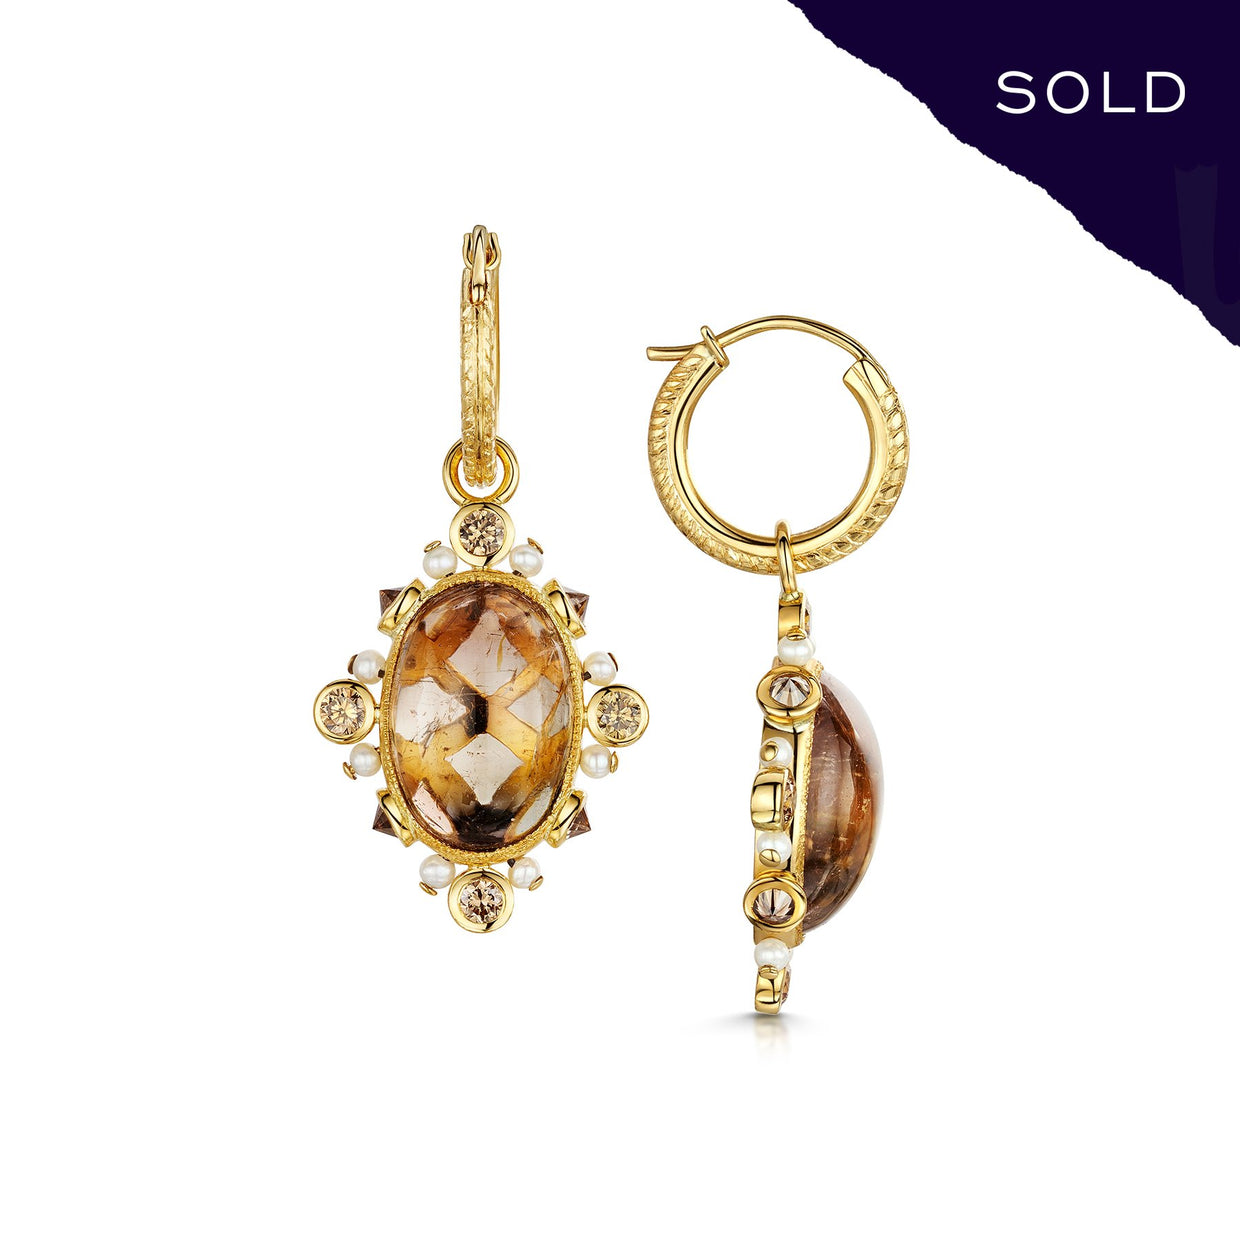 Scottish Gold Collection: Cabochon Tourmaline Earrings-Hamilton & Inches